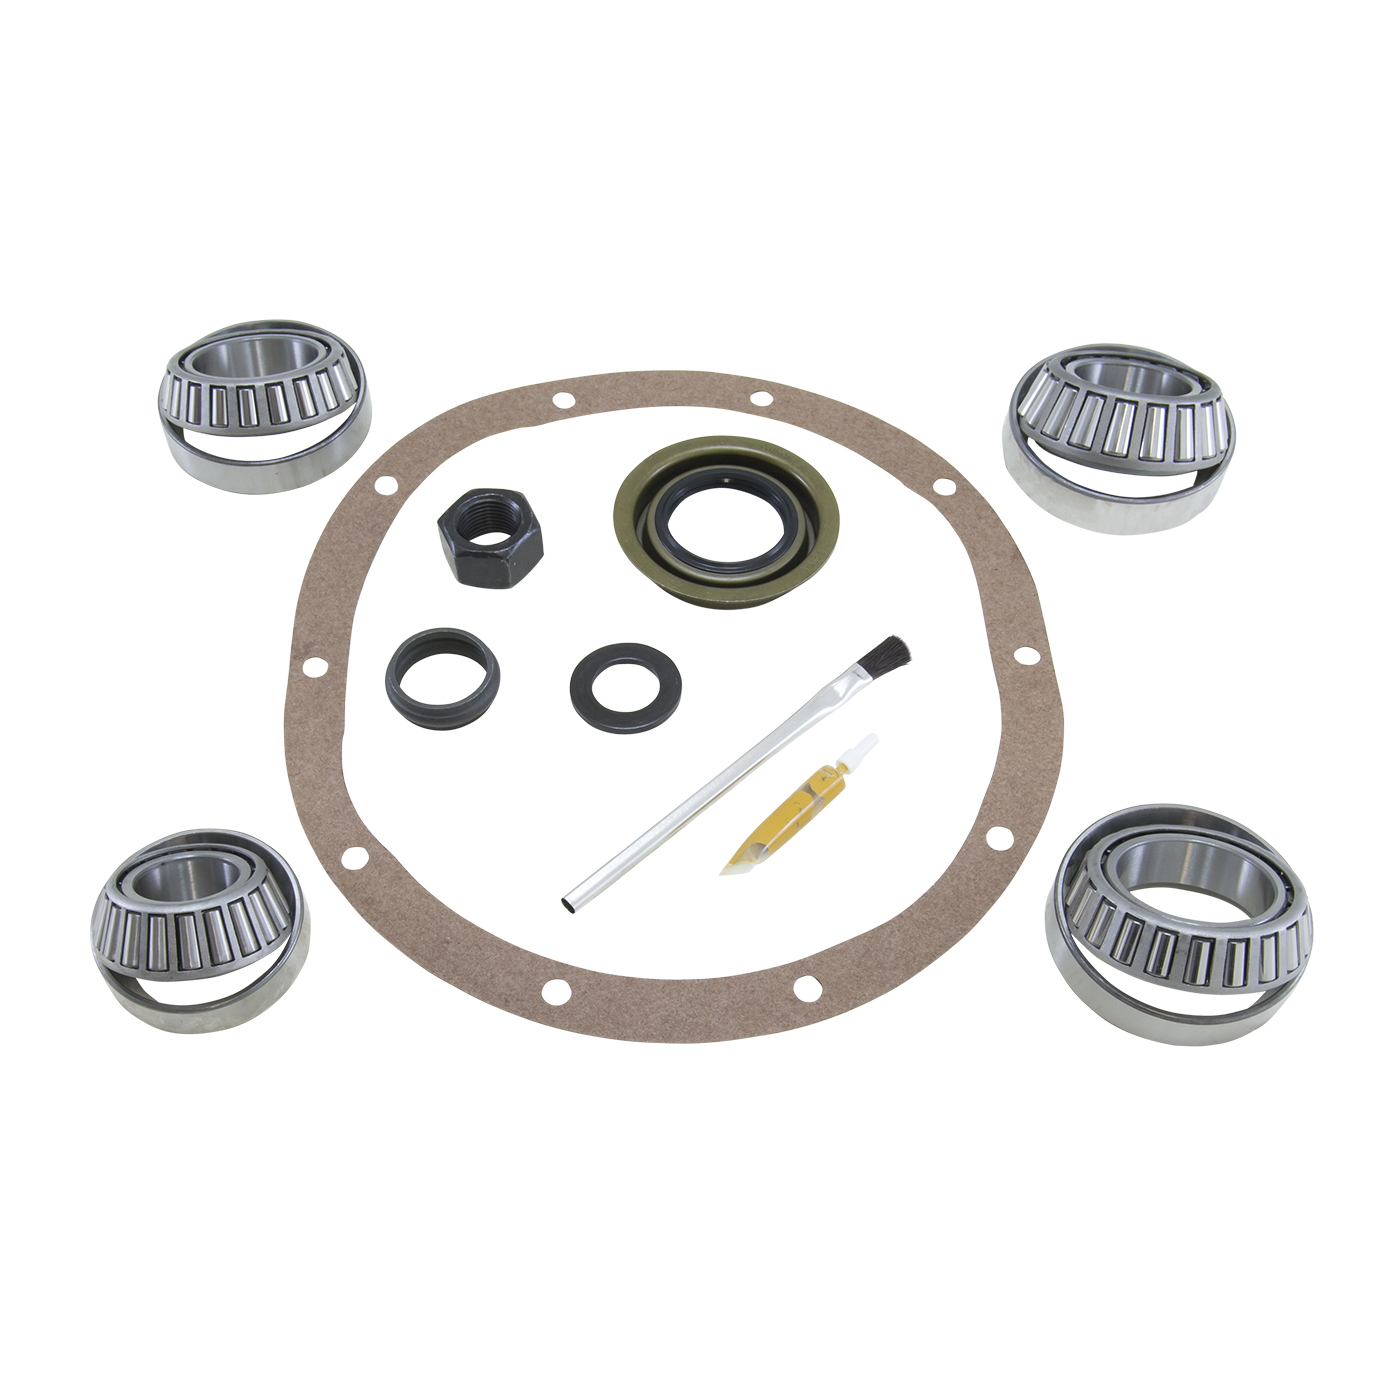 ZBKC8.25-B - USA Standard Bearing kit for Chrysler 8.25